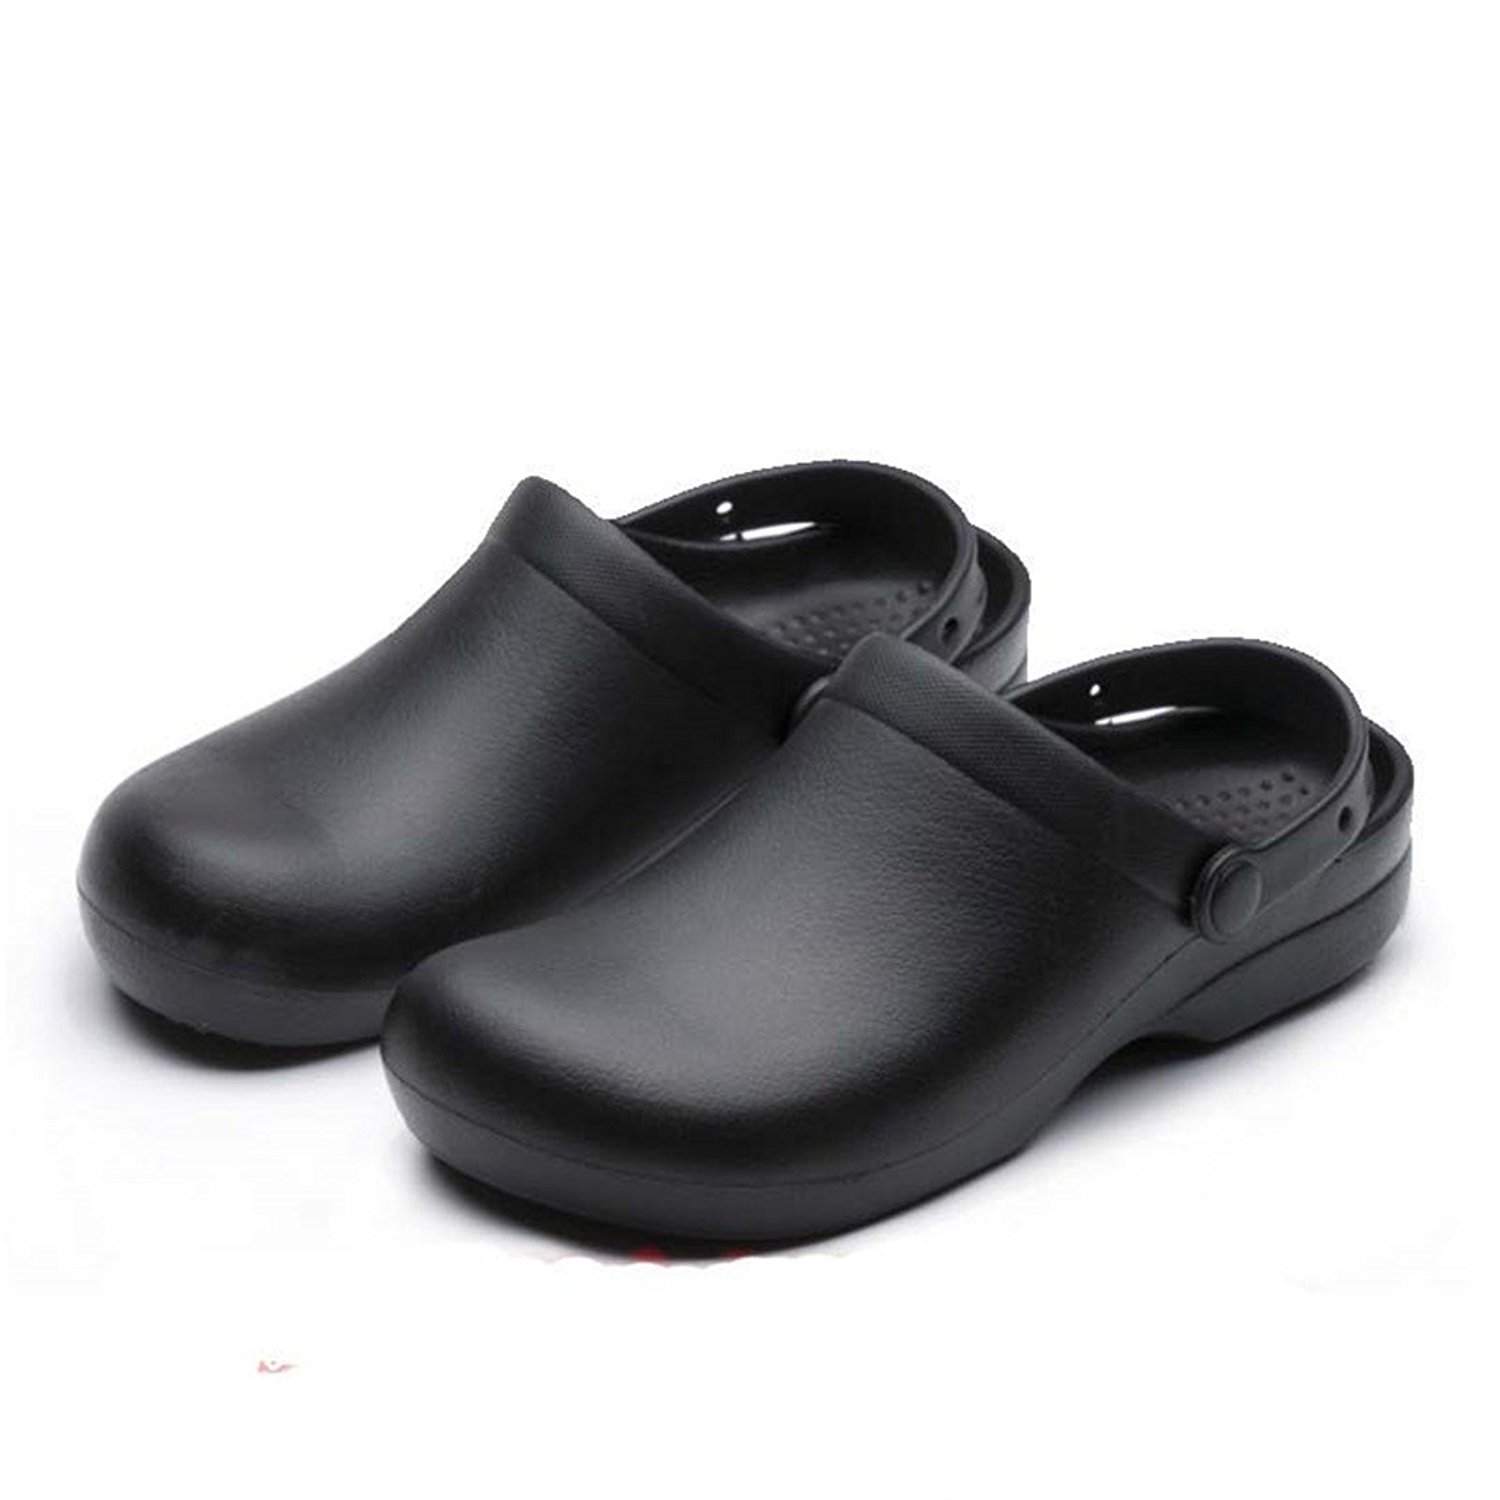 31947844af7a Get Quotations · Professional Chef Hospital Work Anti-slip EVA Surgical Shoes  Men Cook Shoes Surgery Scrubreathable